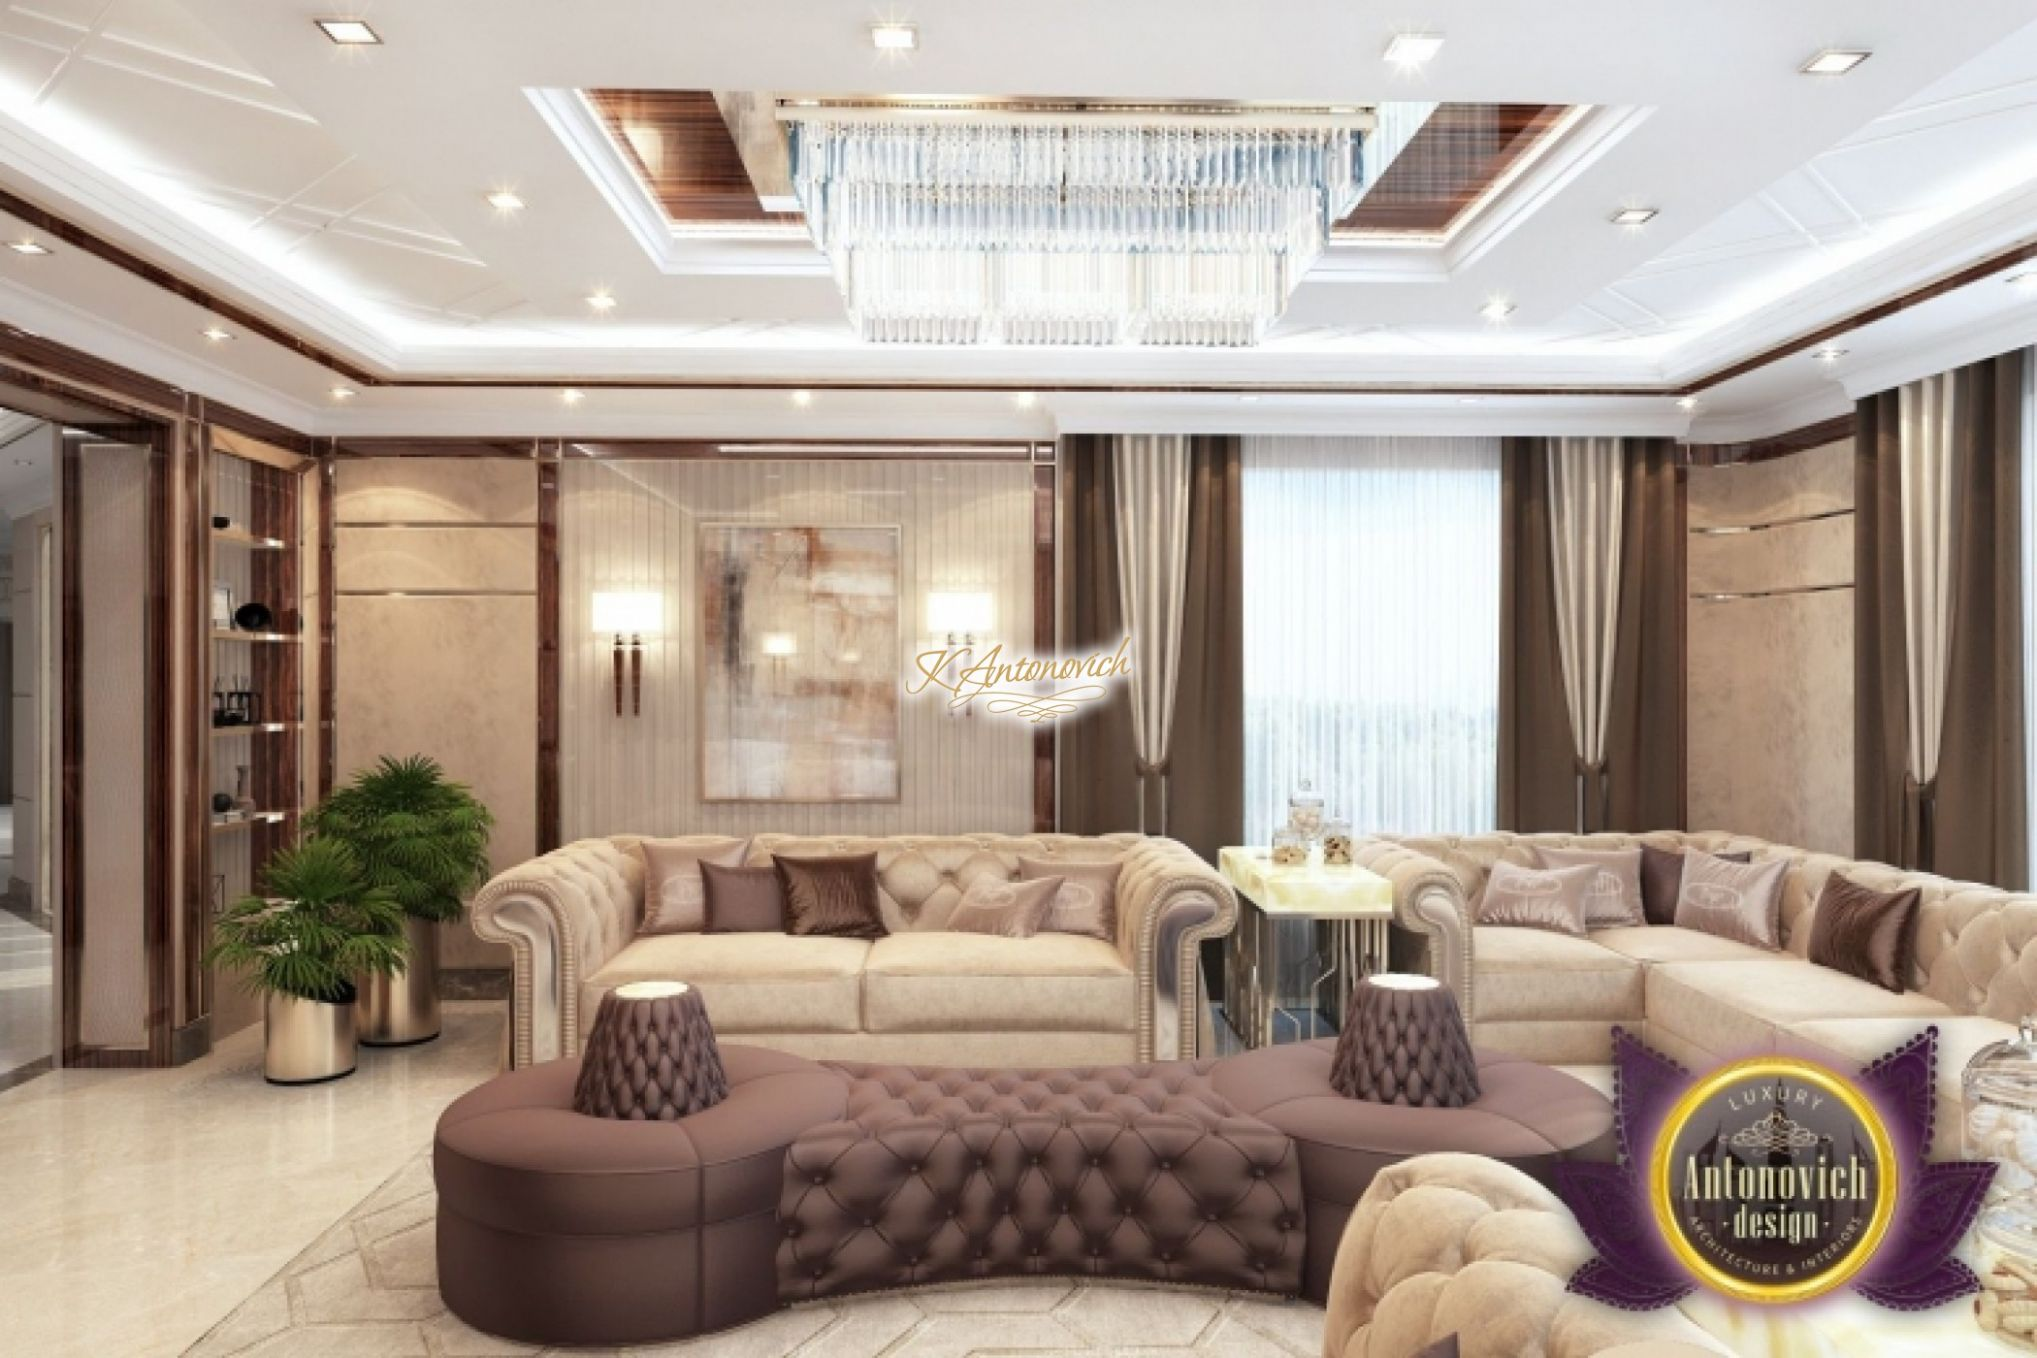 Home Decor Ideas For Living Room Kenya - living room ideas kenya